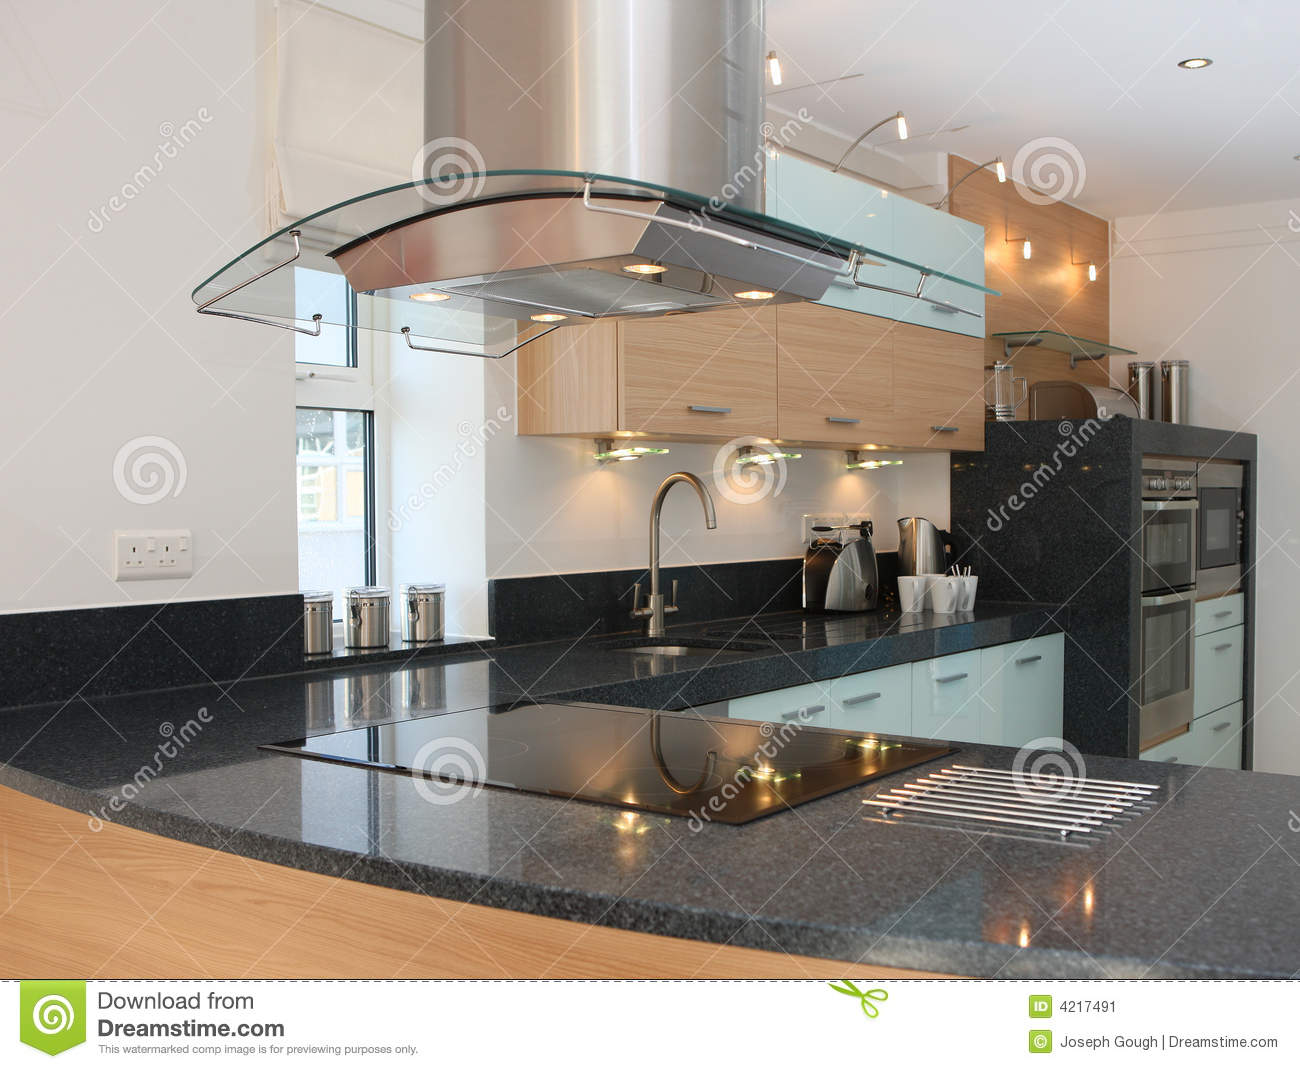 Luxury Modern Kitchen Interior Stock Image - Image: 4217491